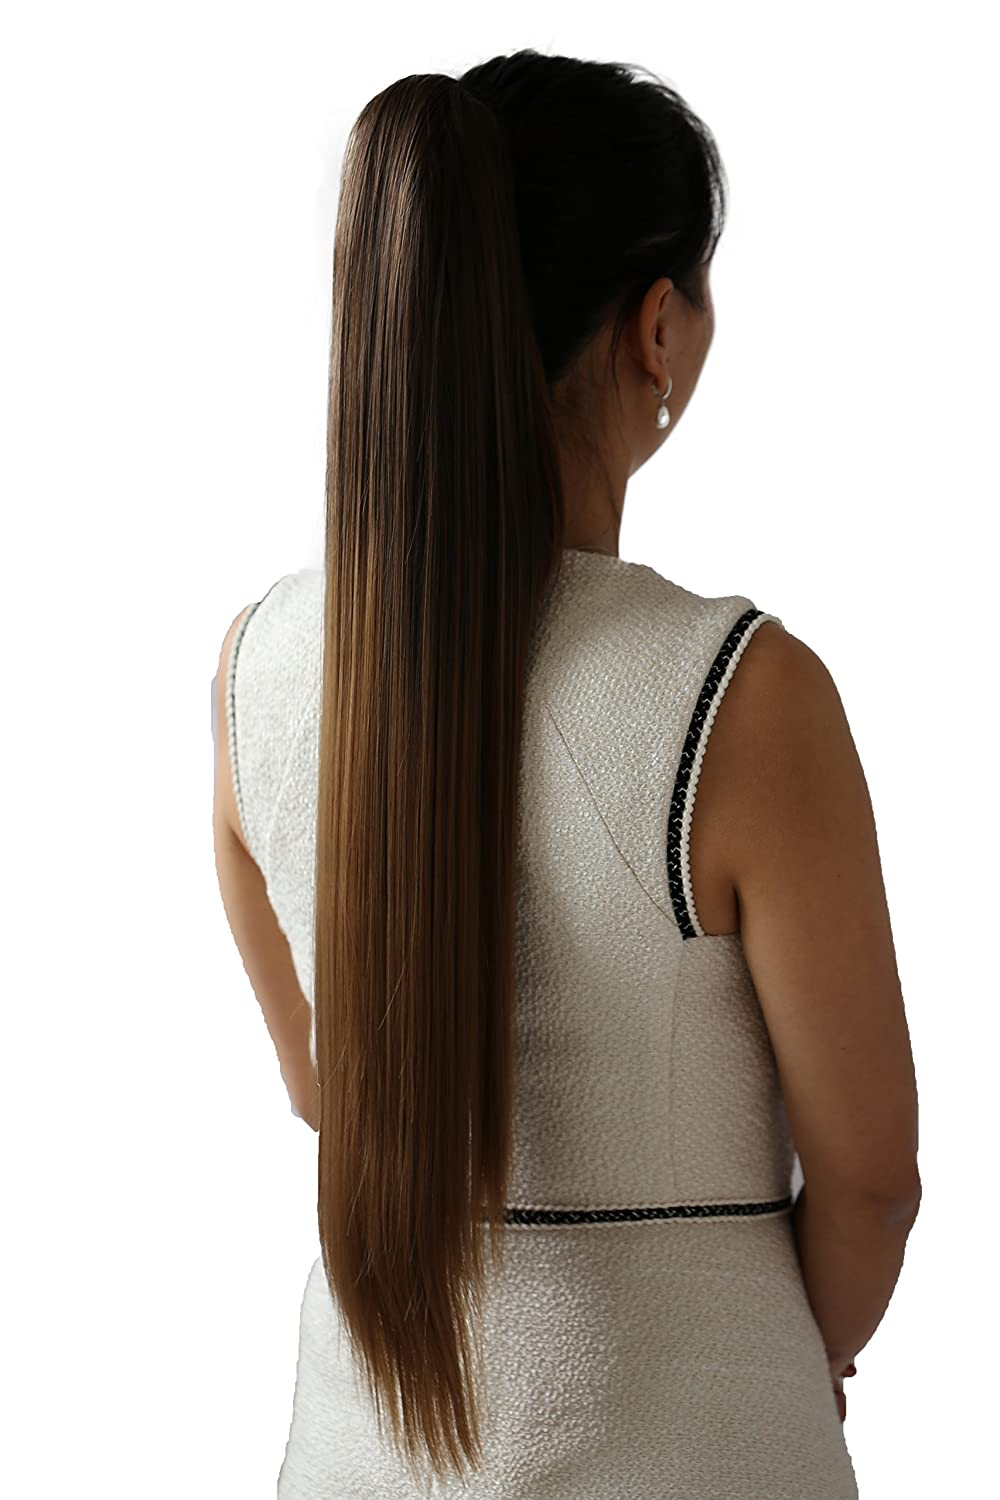 PRETTYSHOP Hairpiece Ponytail Clip on Extension Long hair smooth Heat-Resisting 27 platinum blond # 613 H76 H76_613